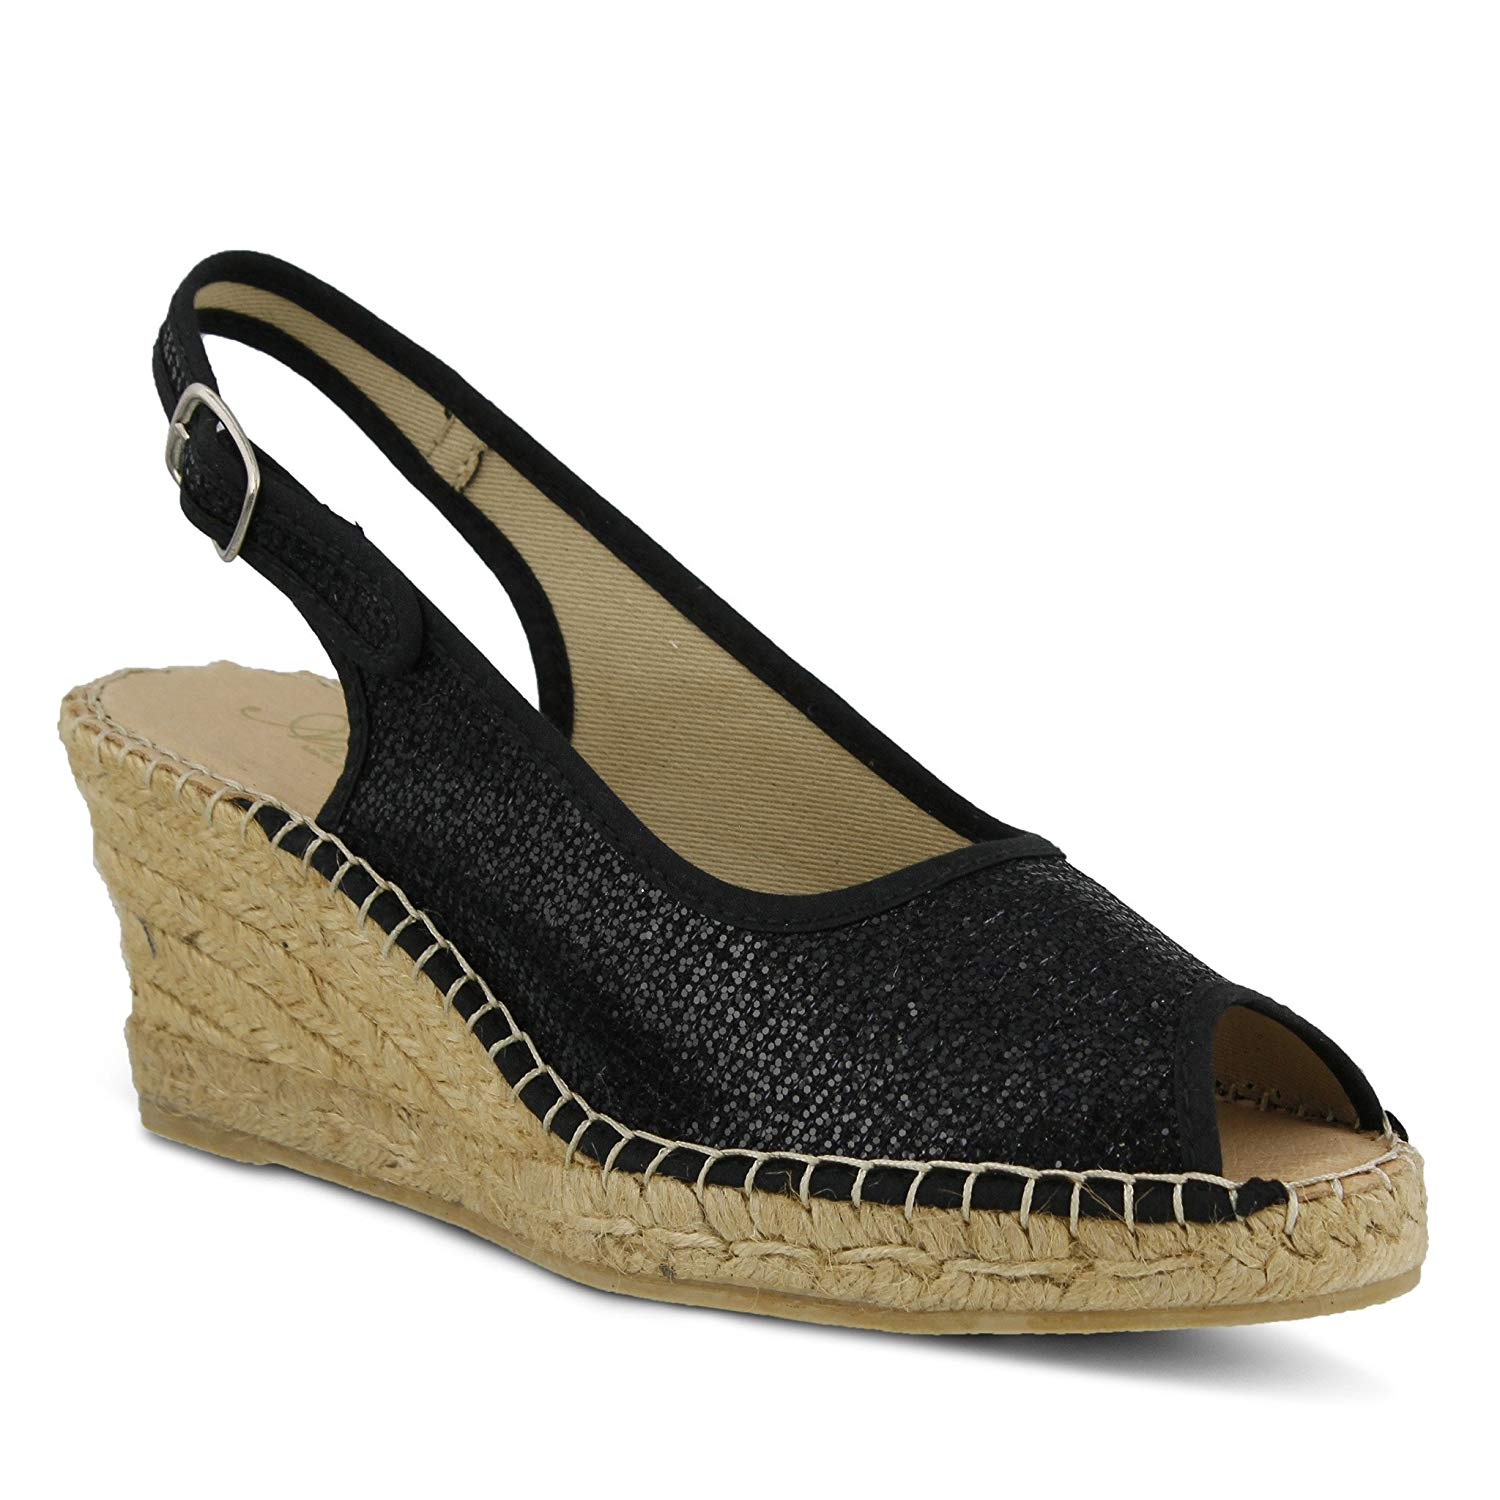 11985e0530a Cheap White Espadrille Wedge, find White Espadrille Wedge deals on ...